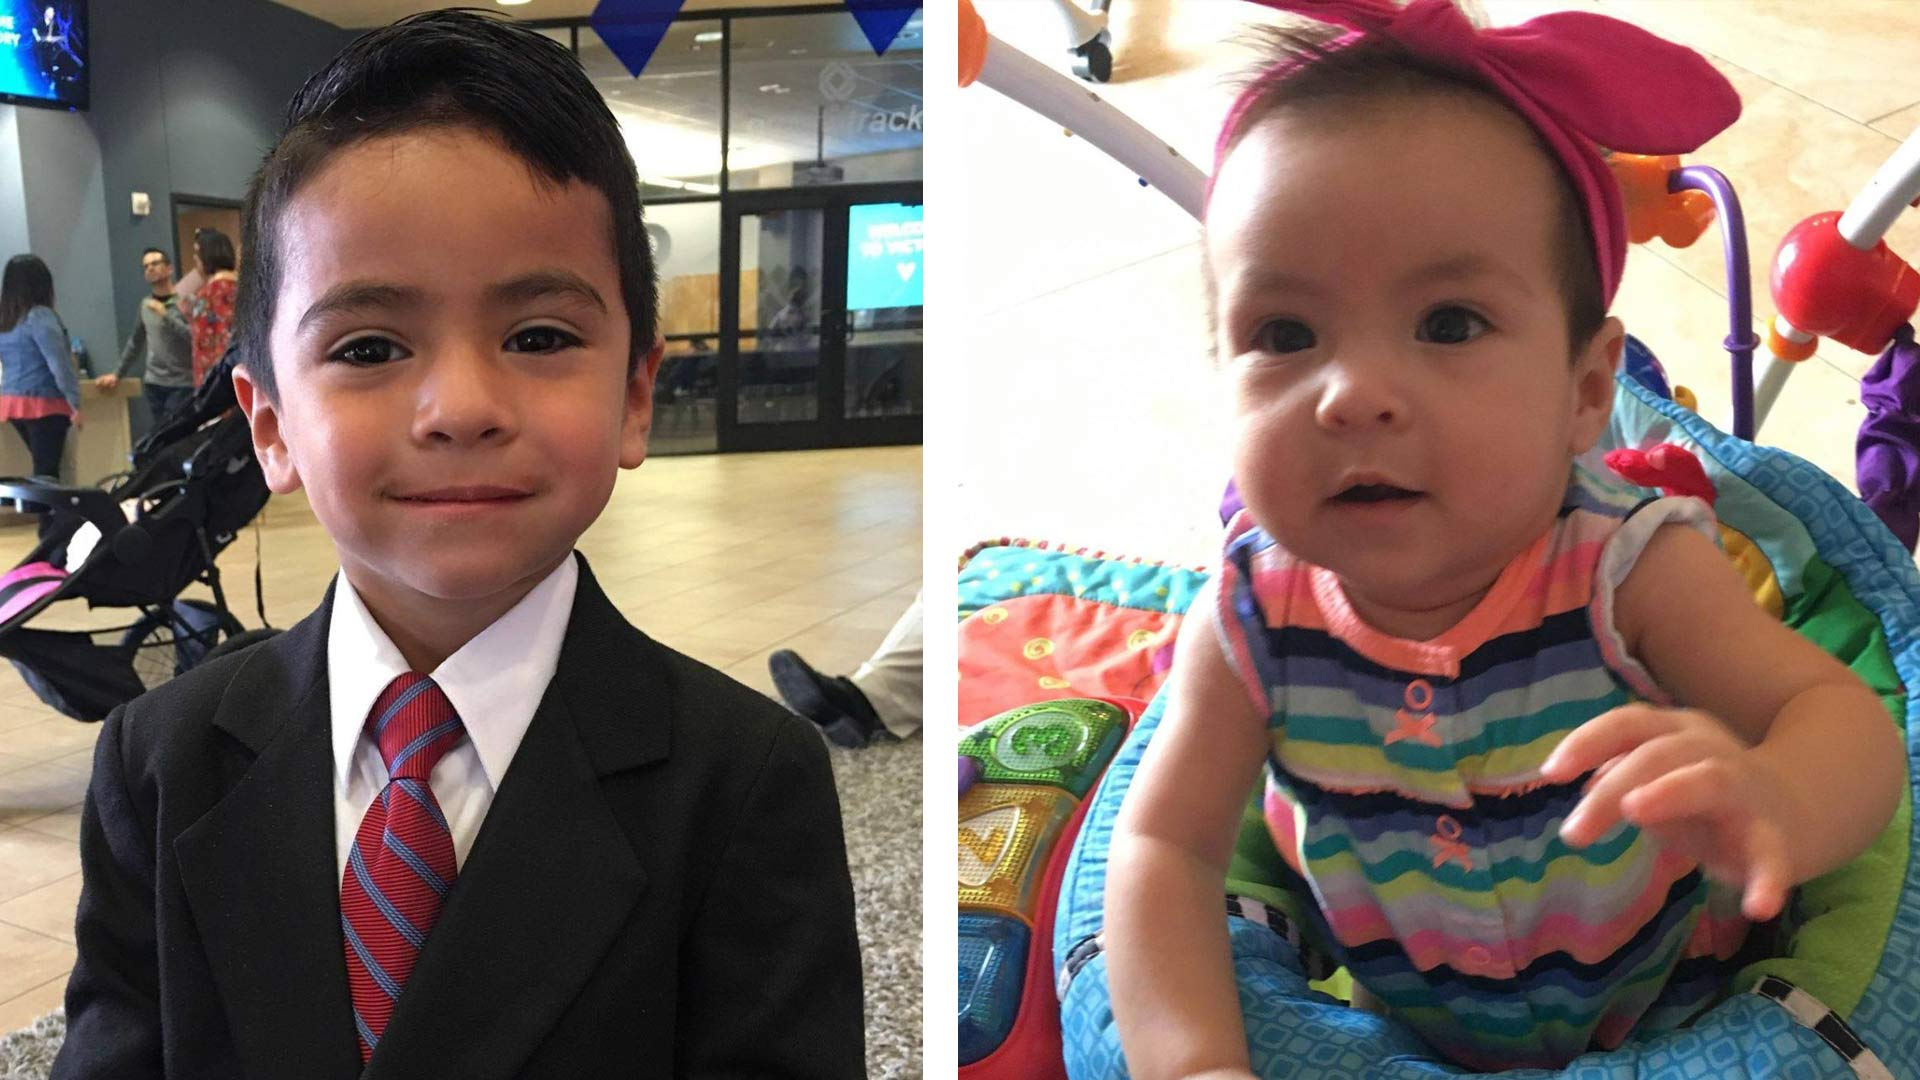 Five-year-old Luis Jr. and 6-month-old Kahmila Ramirez were last seen May, 4, 2018 during a supervised visit with their parents, who are accused of kidnapping them.